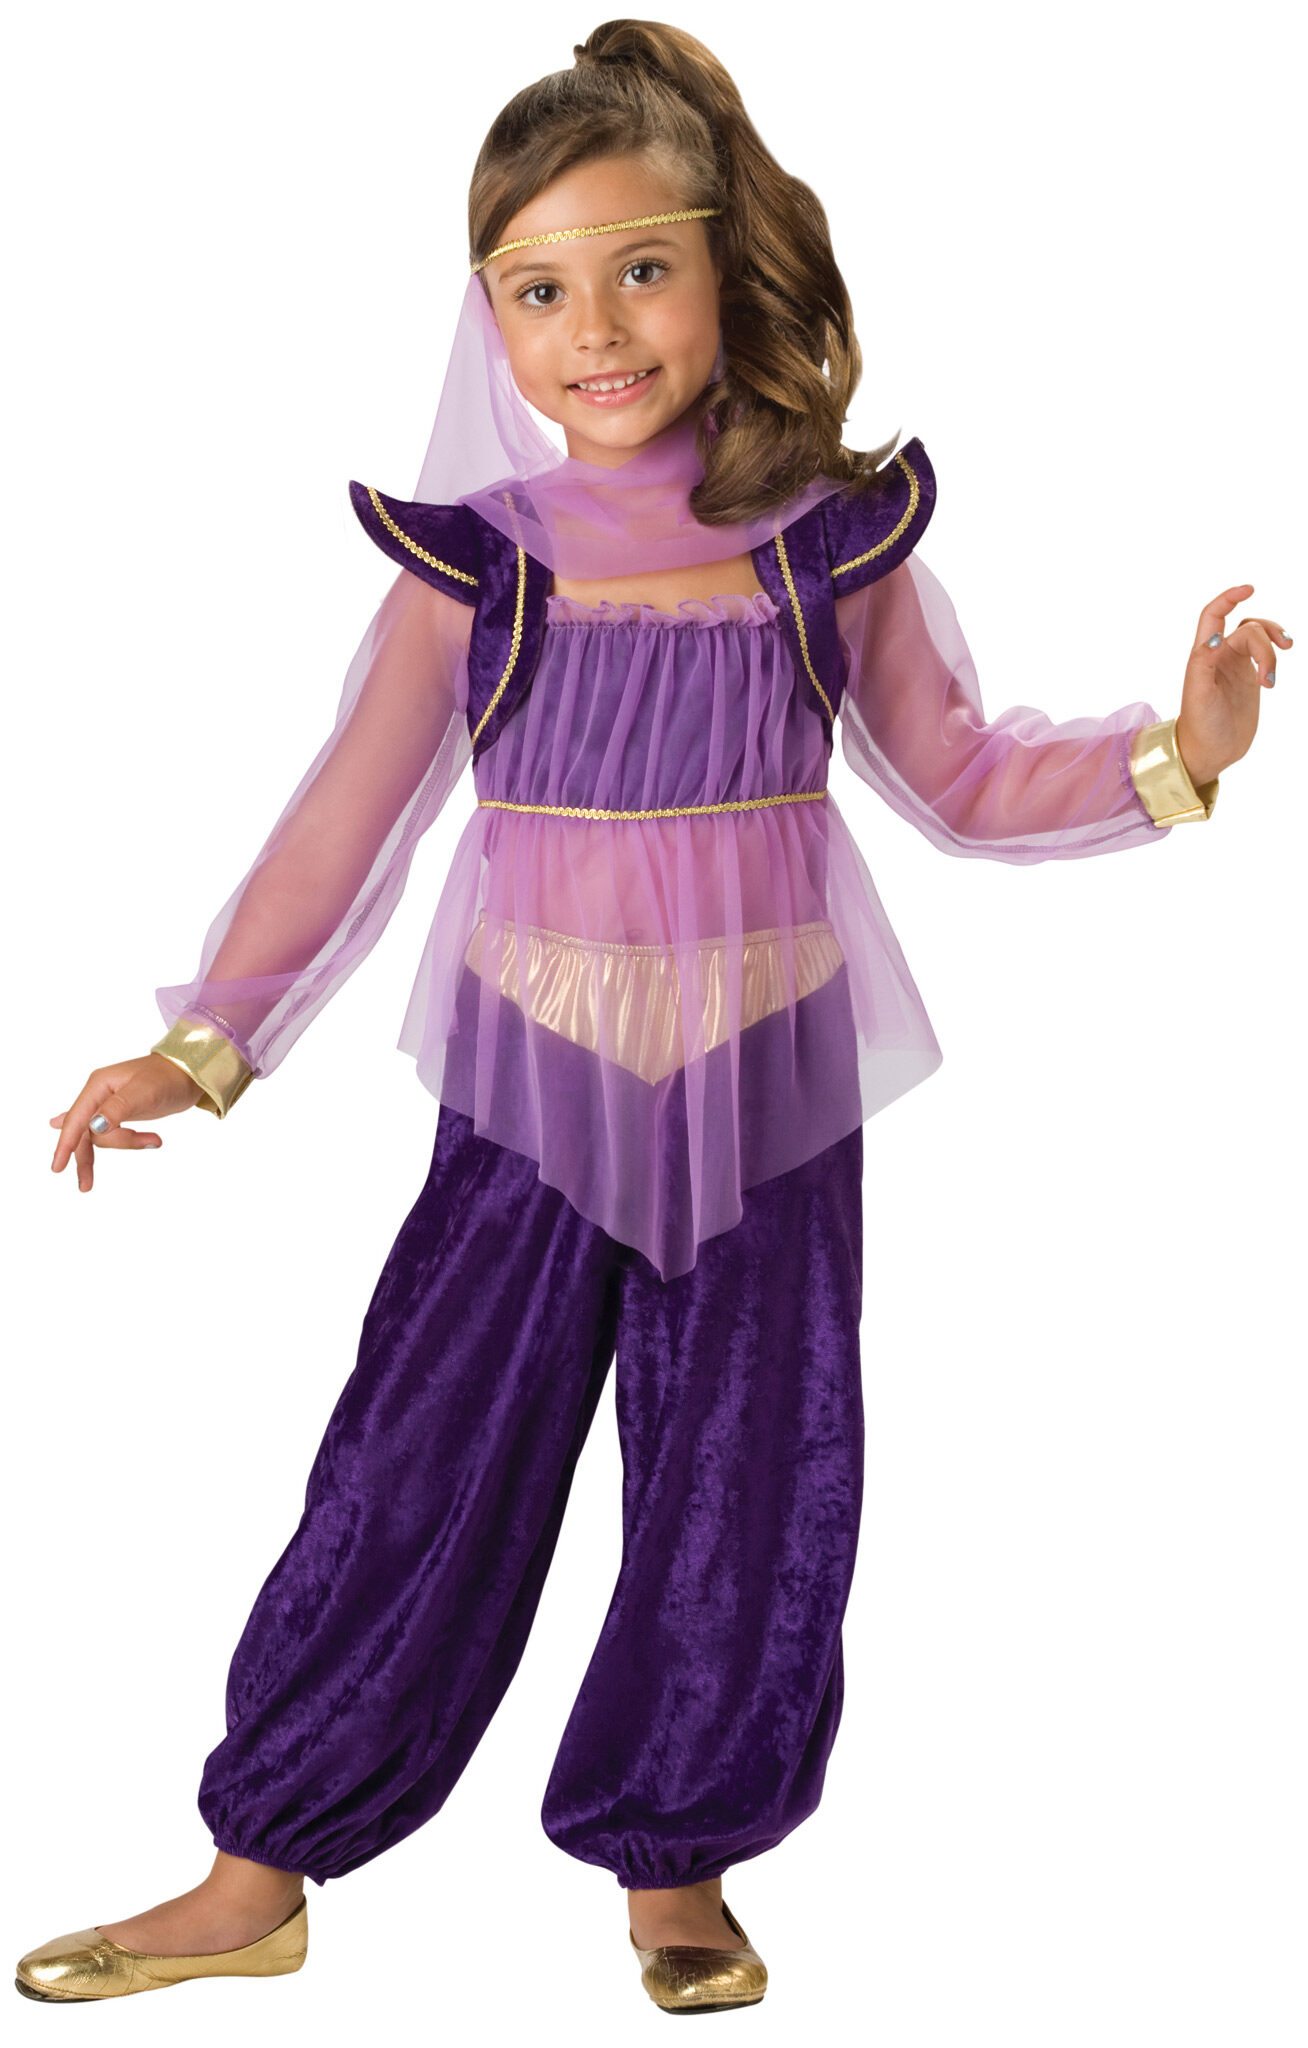 Girls Dreamy Genie Kids Costume  sc 1 st  Mr. Costumes & Genie Costumes - Mr. Costumes